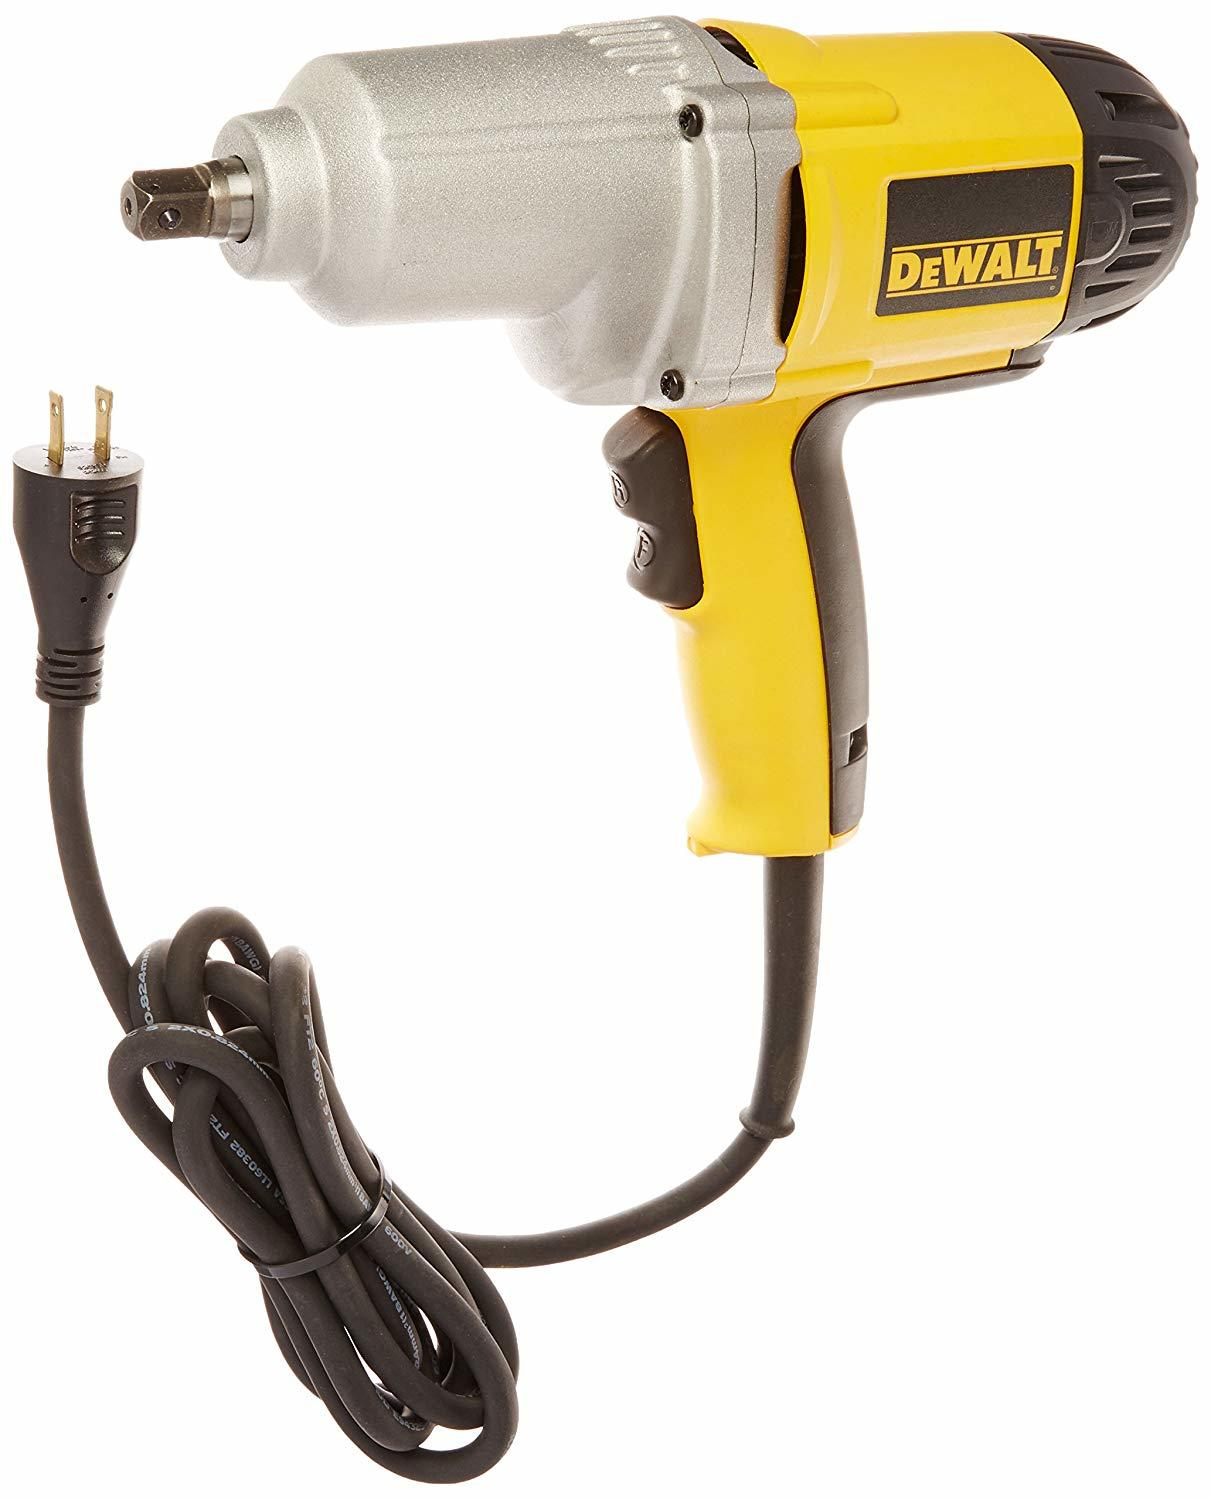 DEWALT Cordless Impact Wrench with Detent Pin Anvil